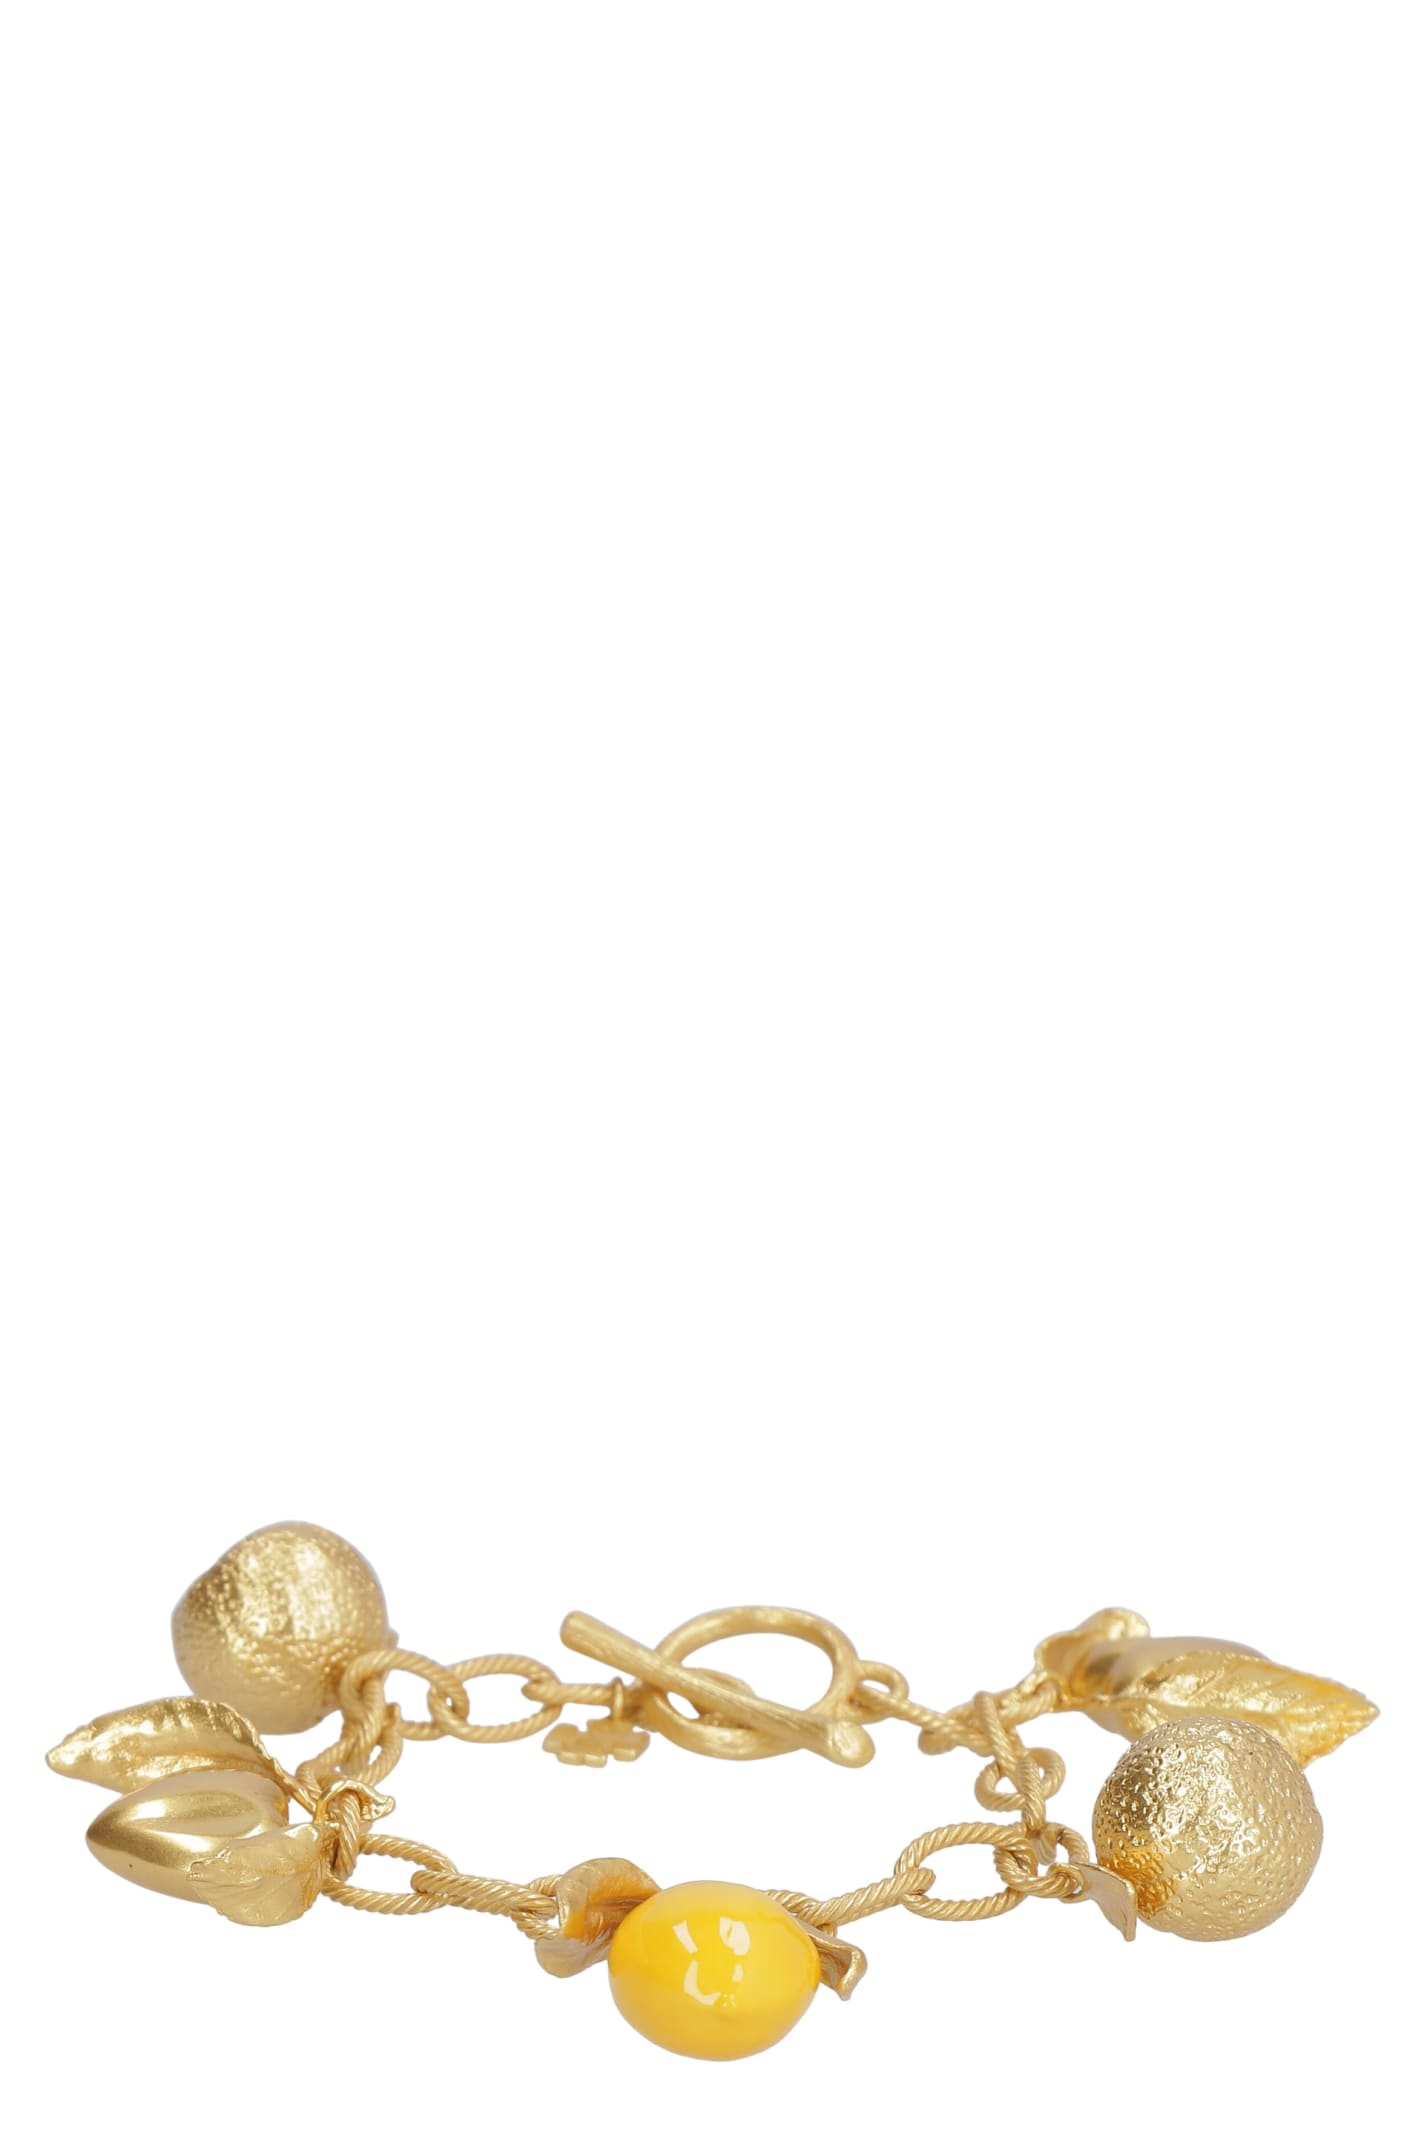 Tory Burch Lemon Charm Bracelet